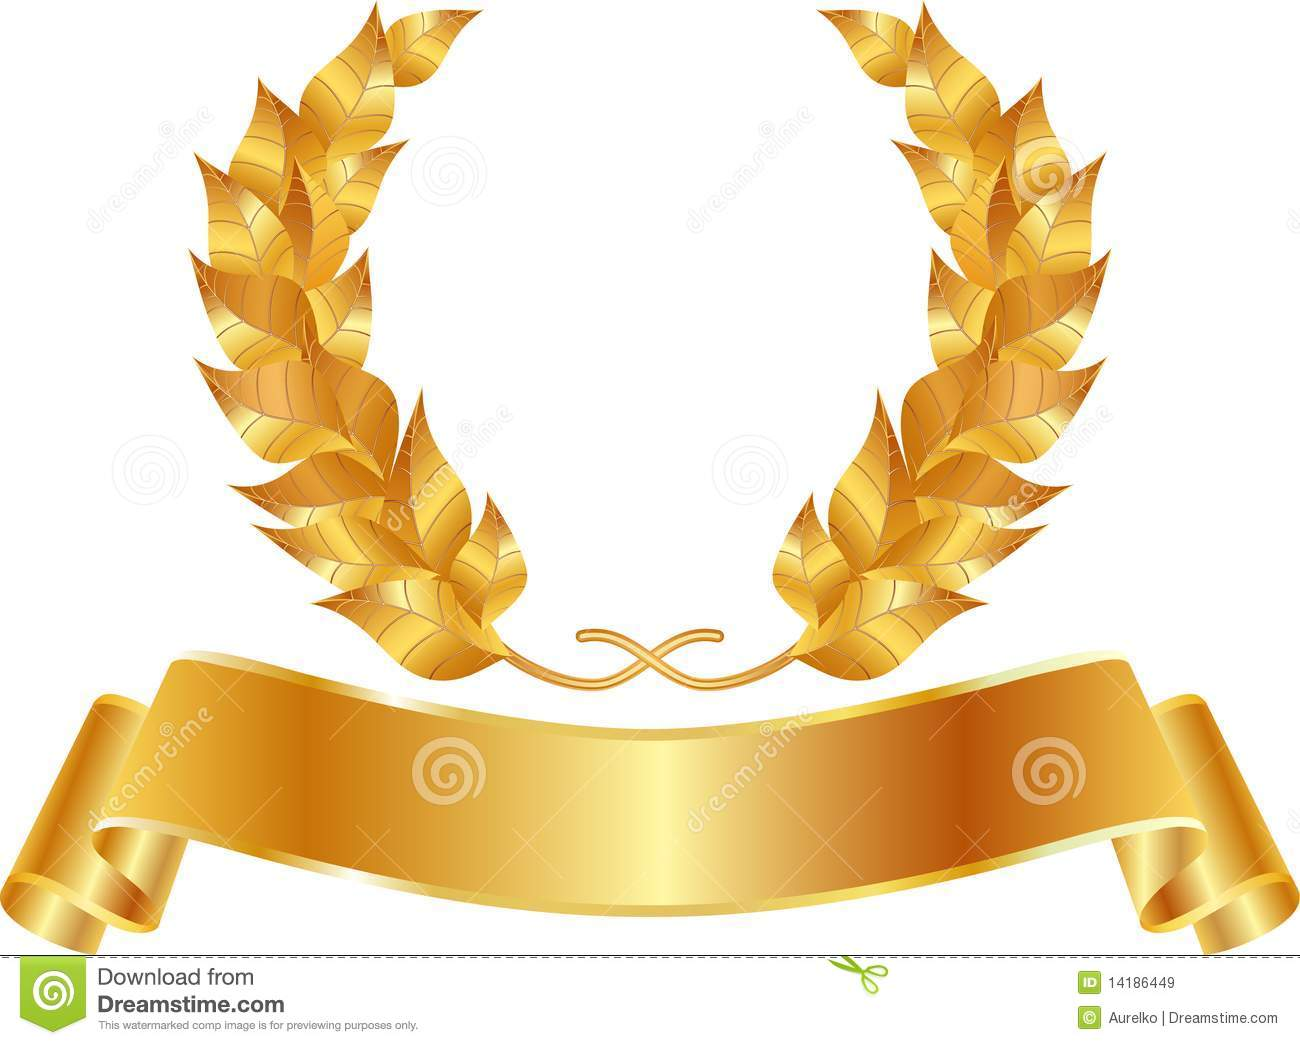 Golden Wreath Royalty Free Stock Images.